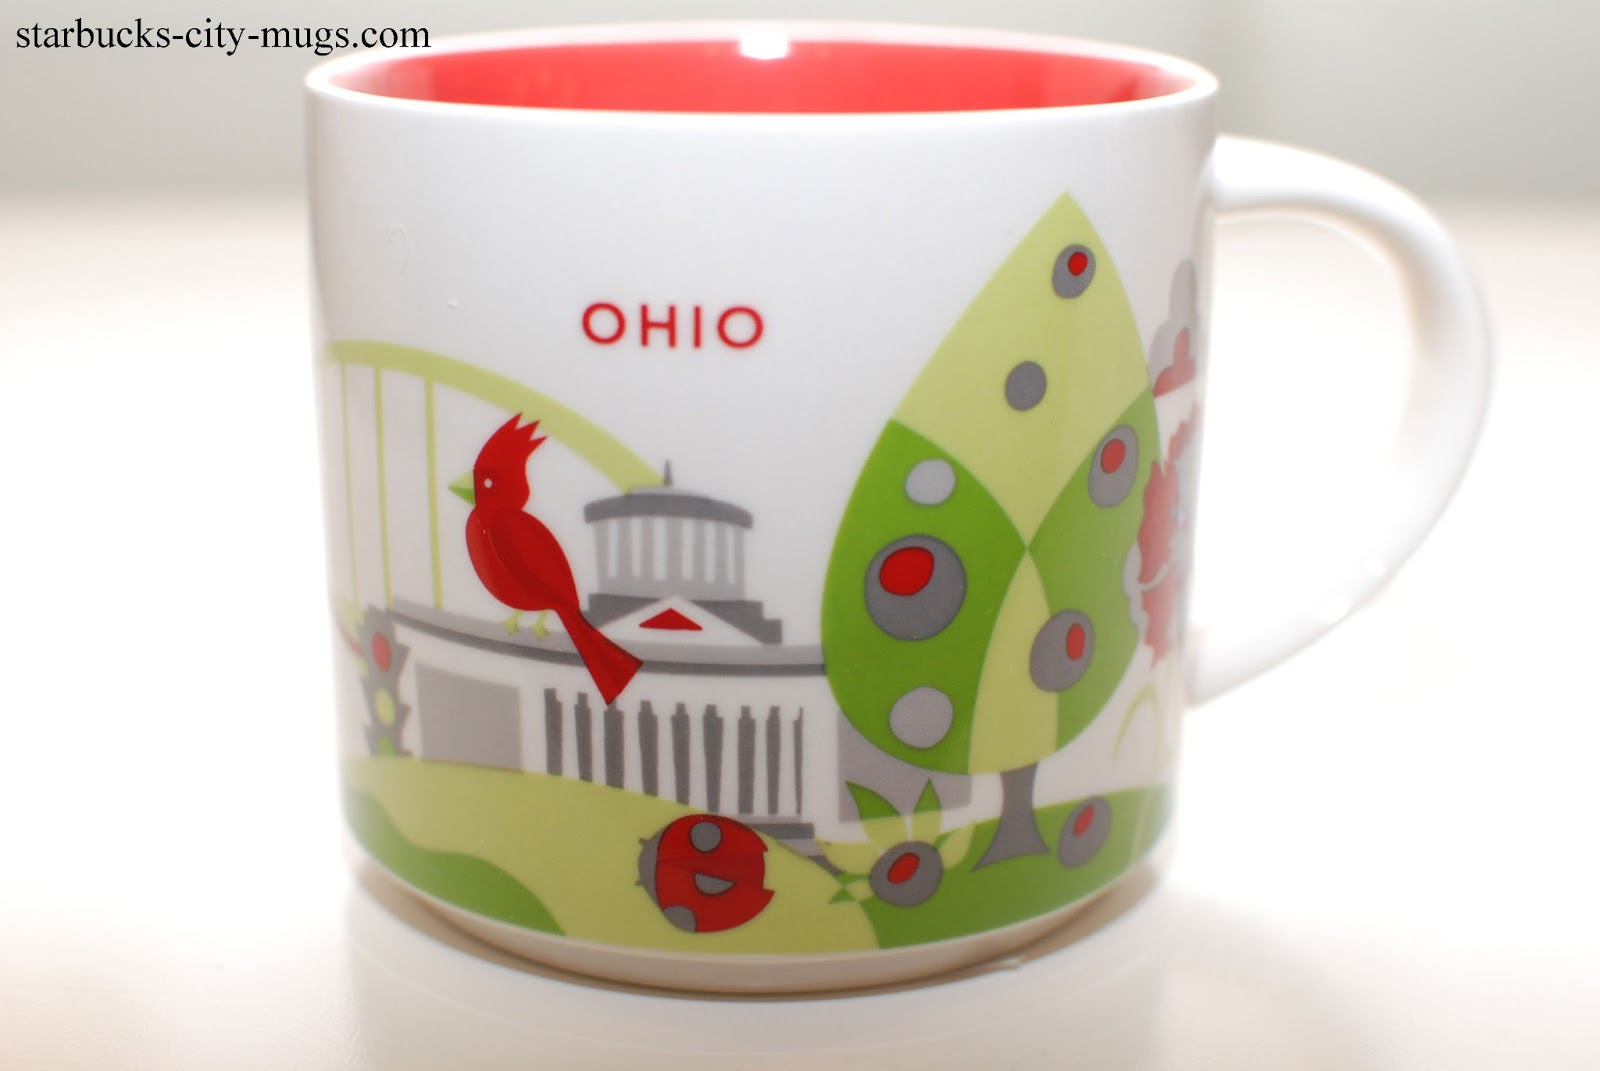 Starbucks city mugs you are here series gumiabroncs Gallery